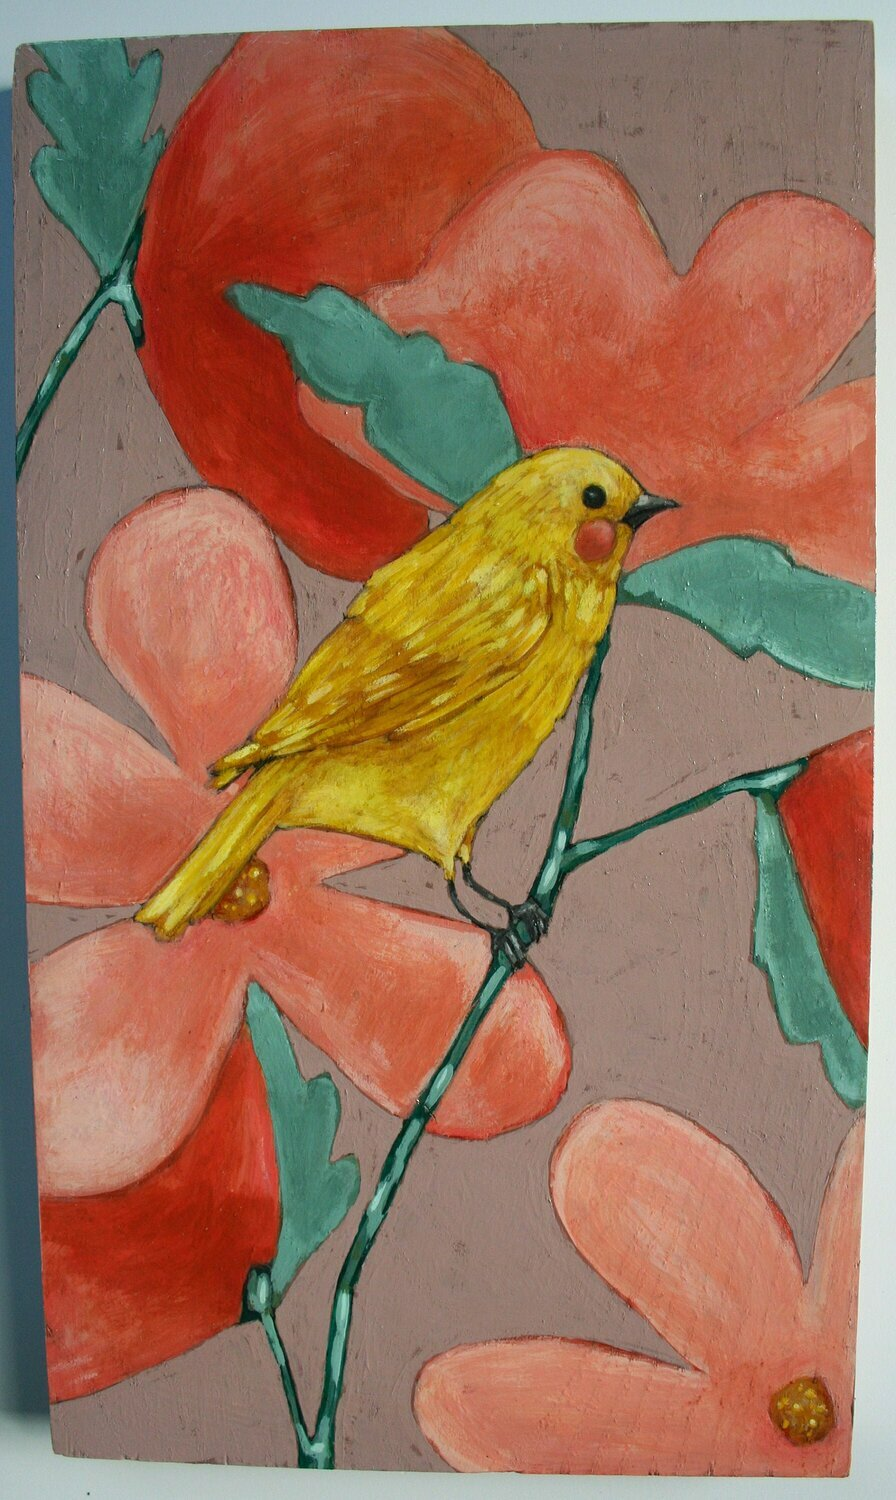 original yellow bird on branch pink & red flowers painting a2n2koon wall art on reclaimed wood whimsical textural bird wisteria tone artwork